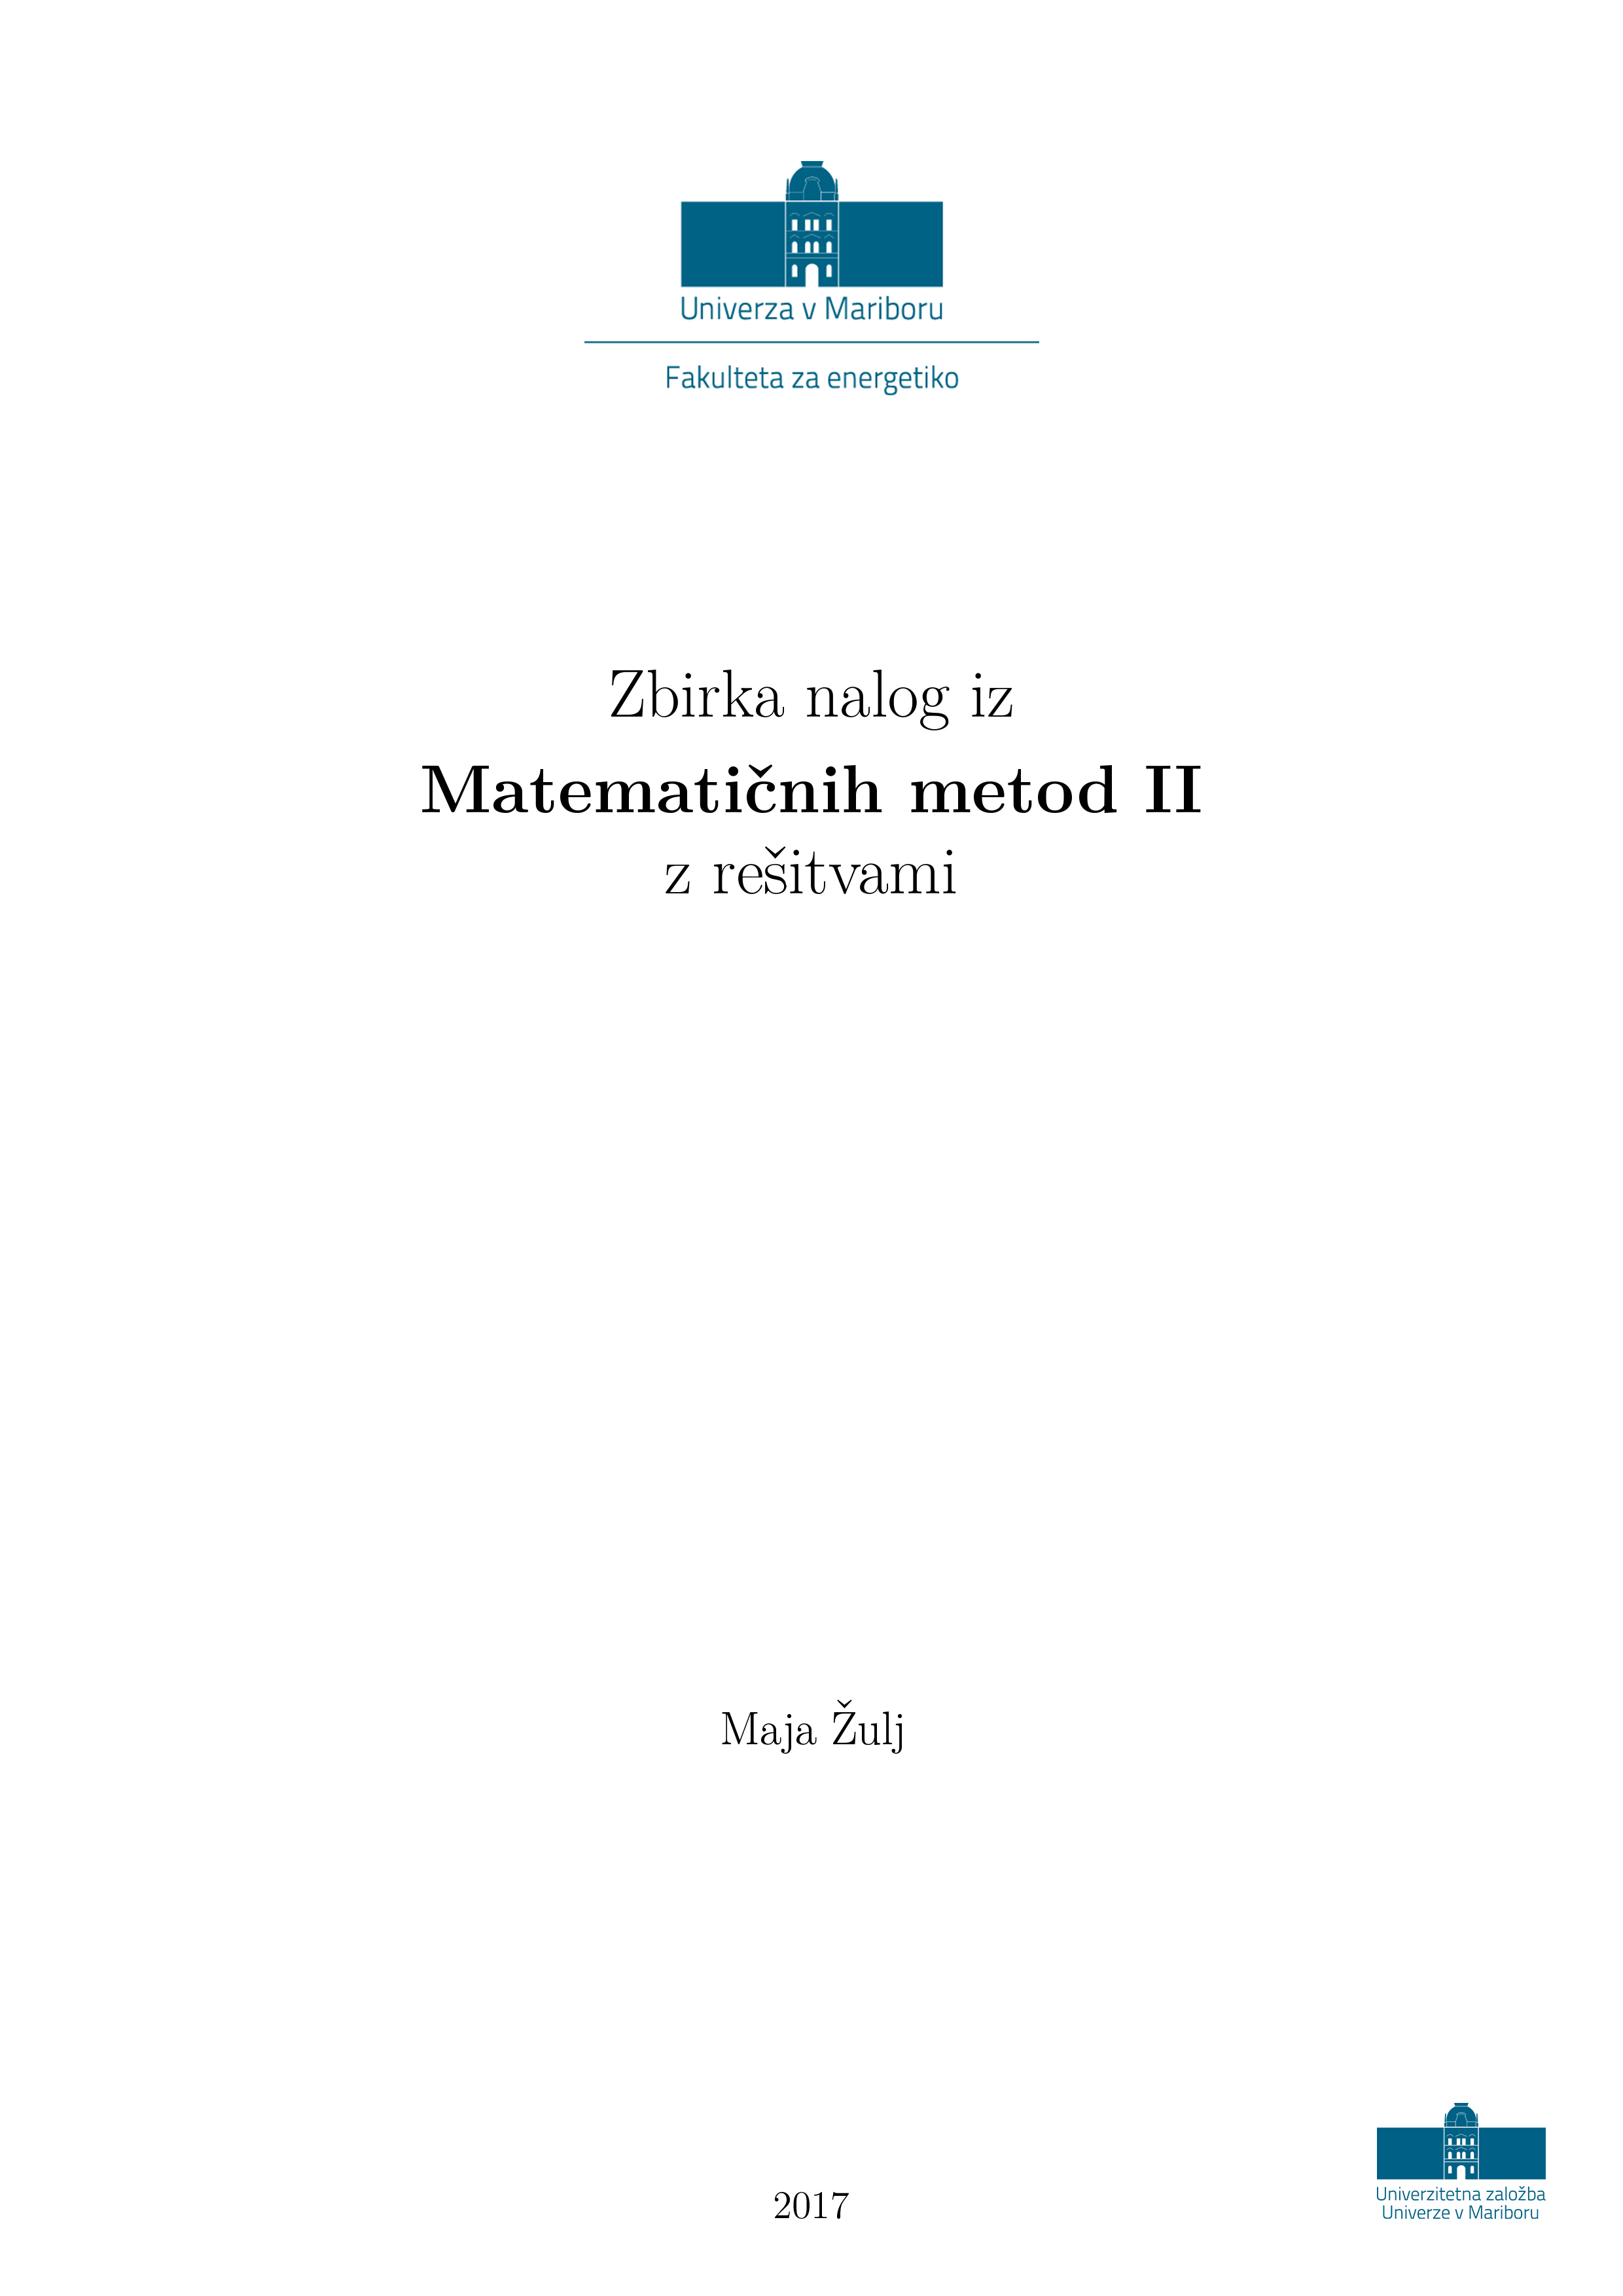 Mathematical methods II - Exercises with solutions